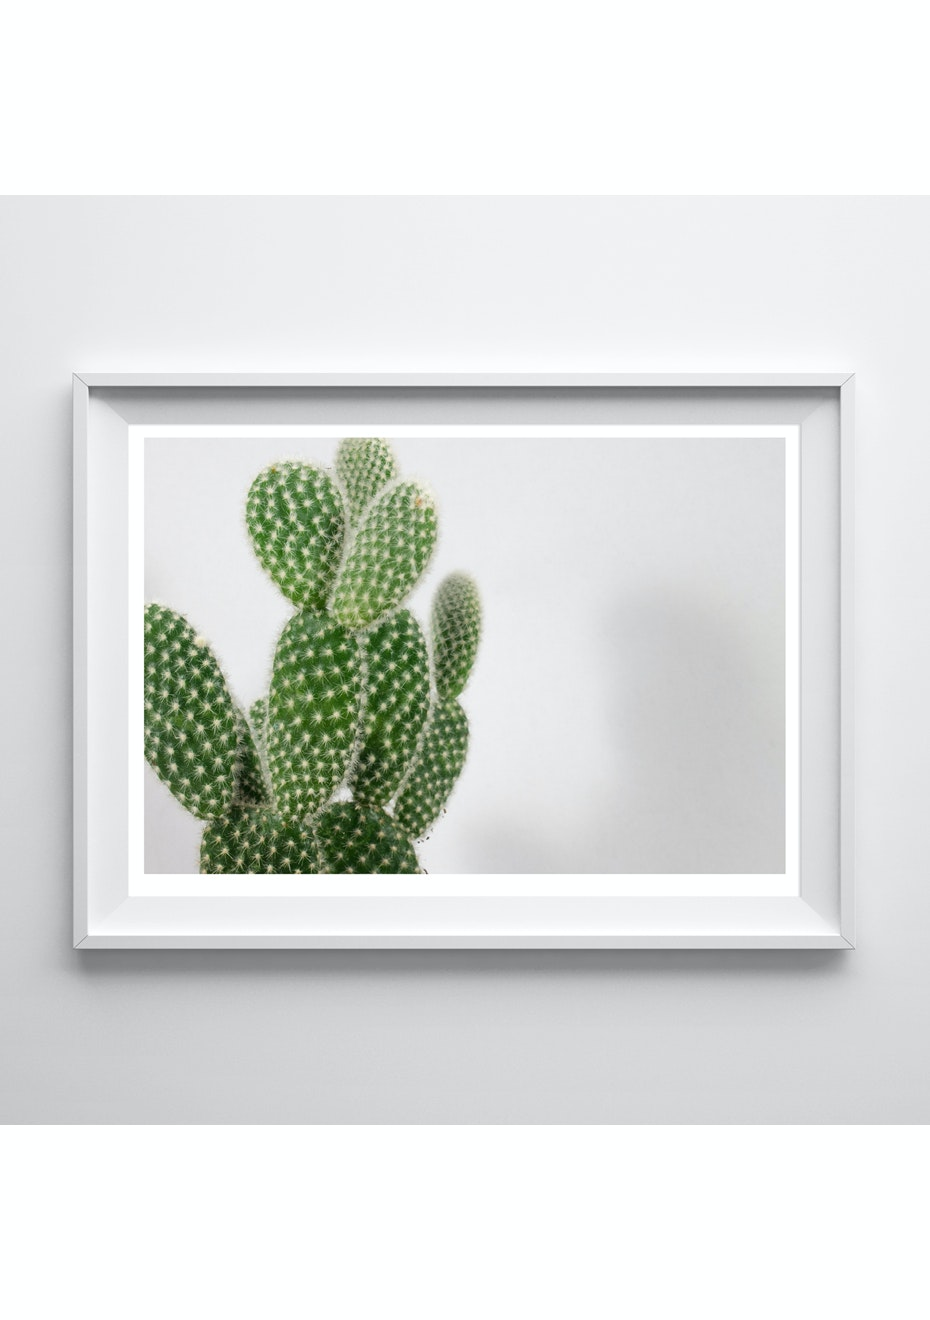 Simply Creative - Cactus - A4 Colour Print